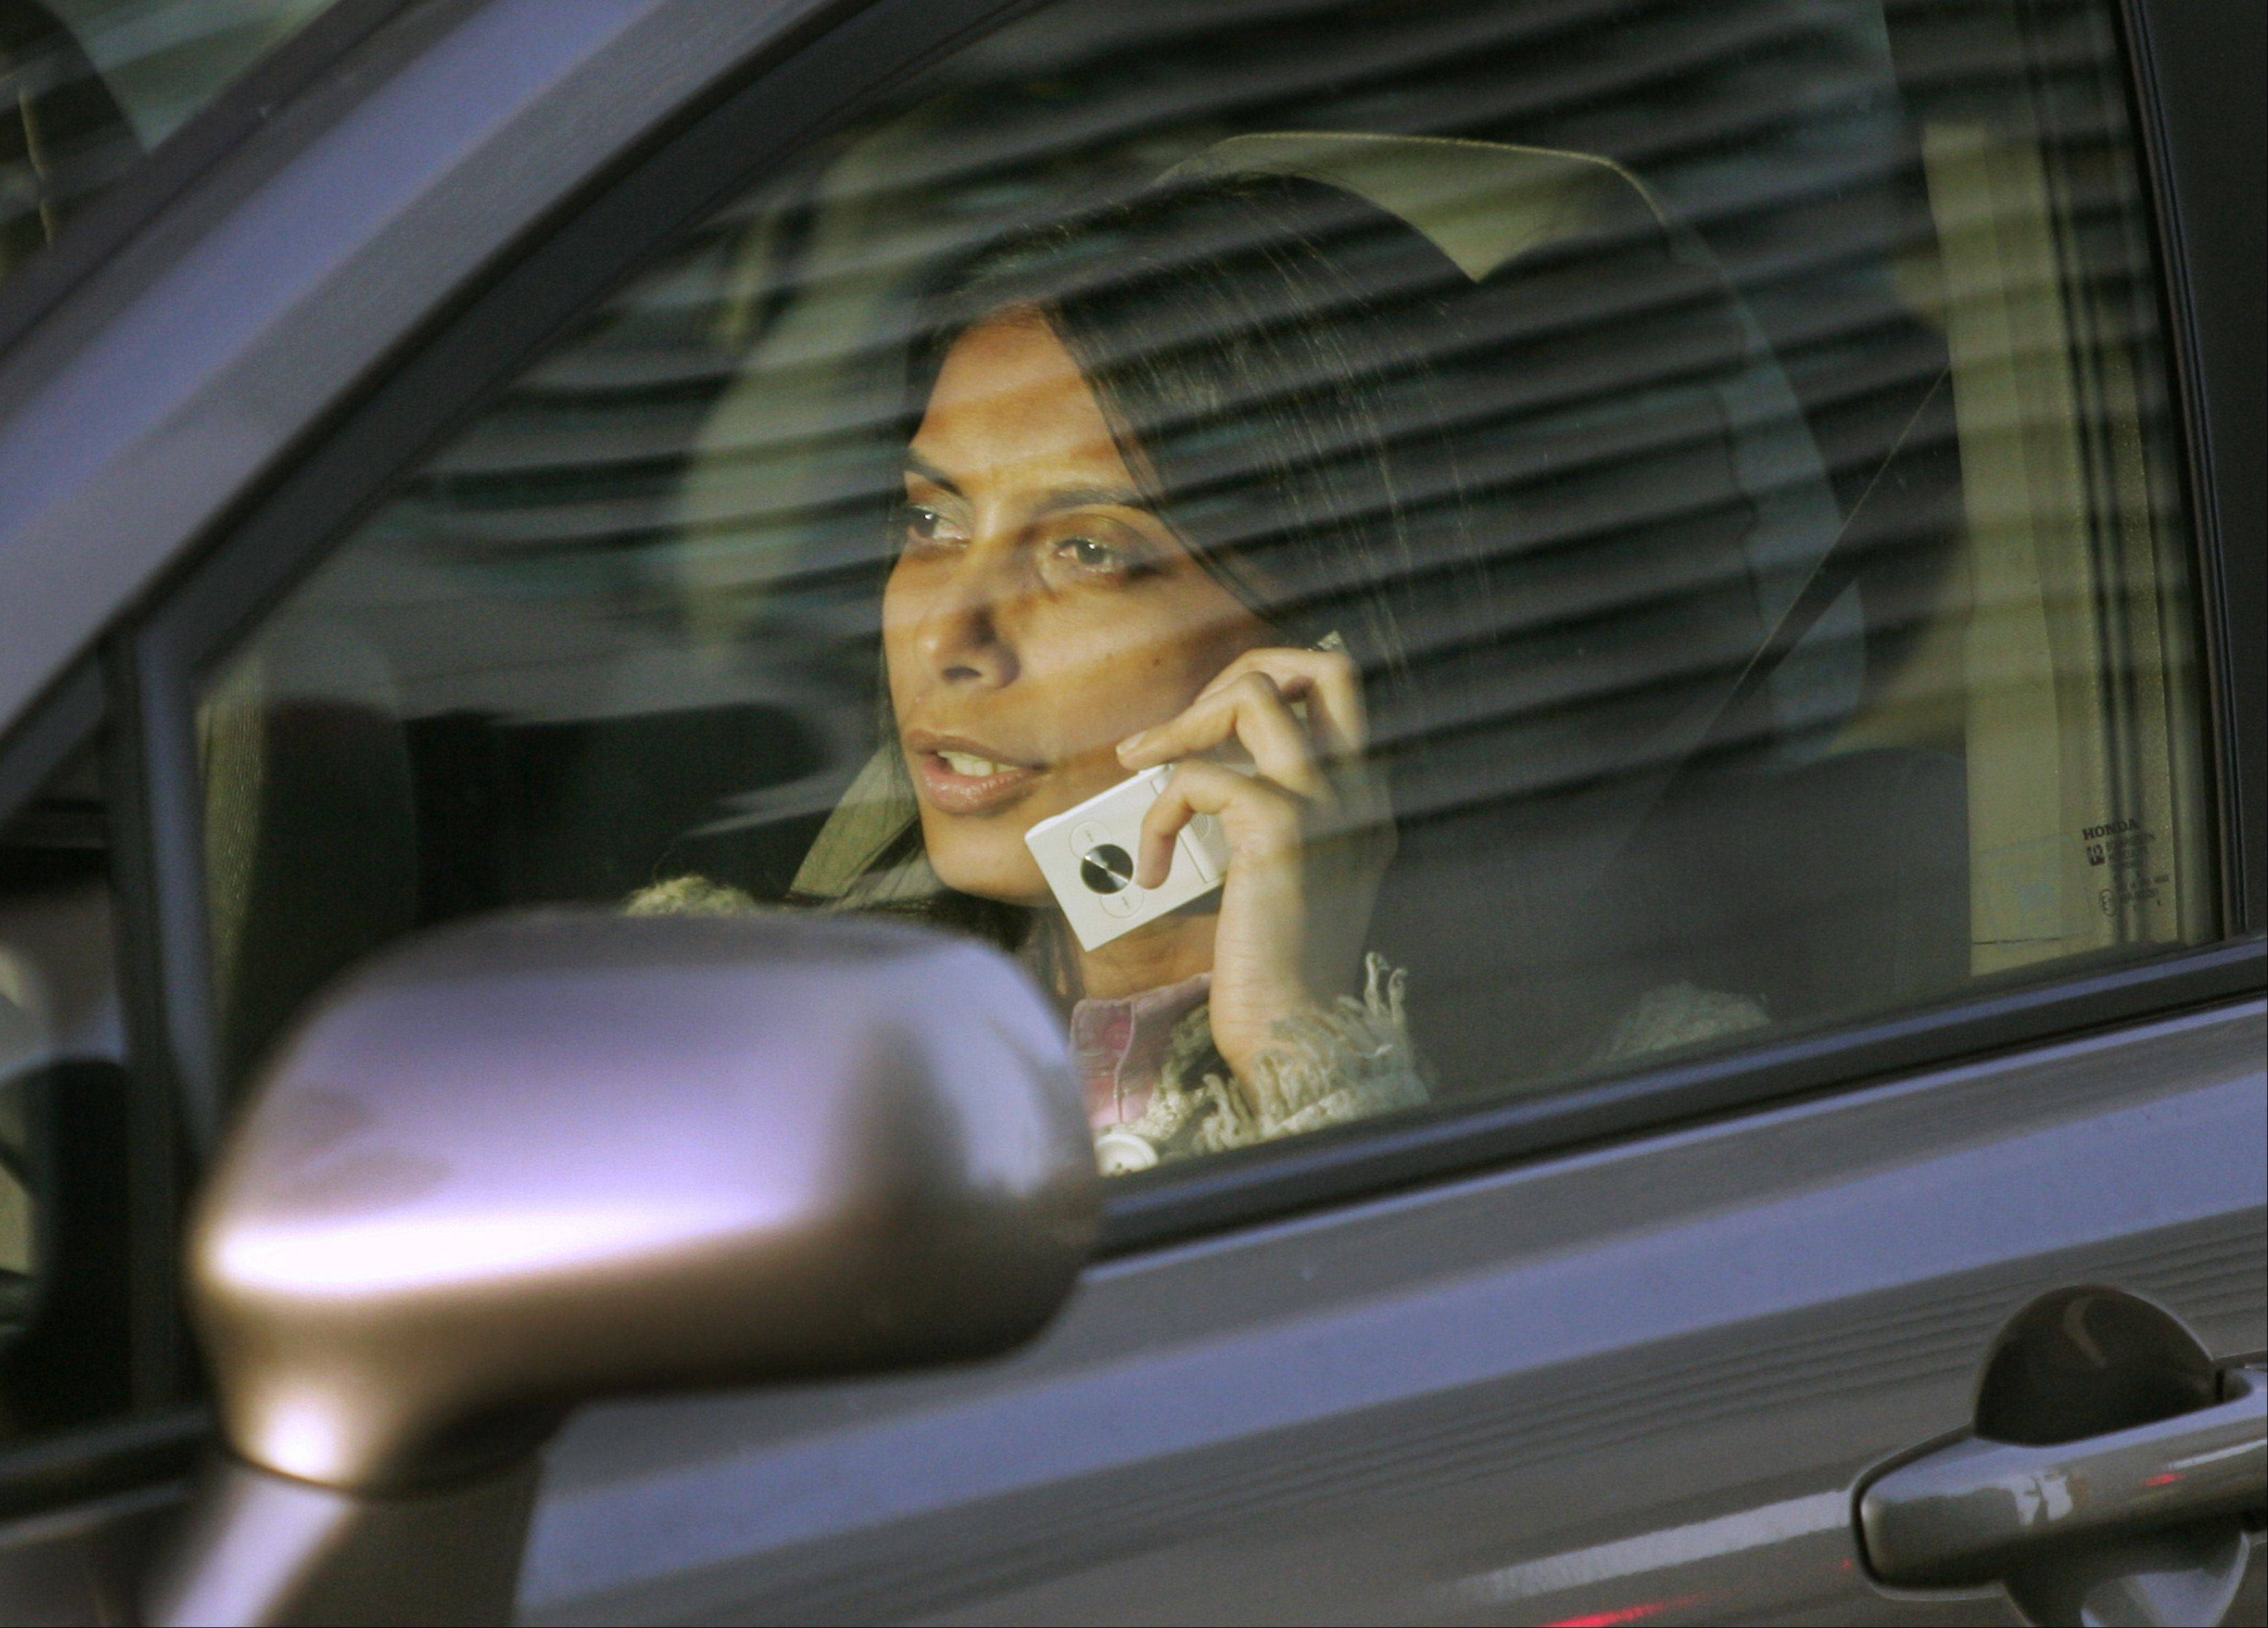 Lawmakers: No handheld phones while driving